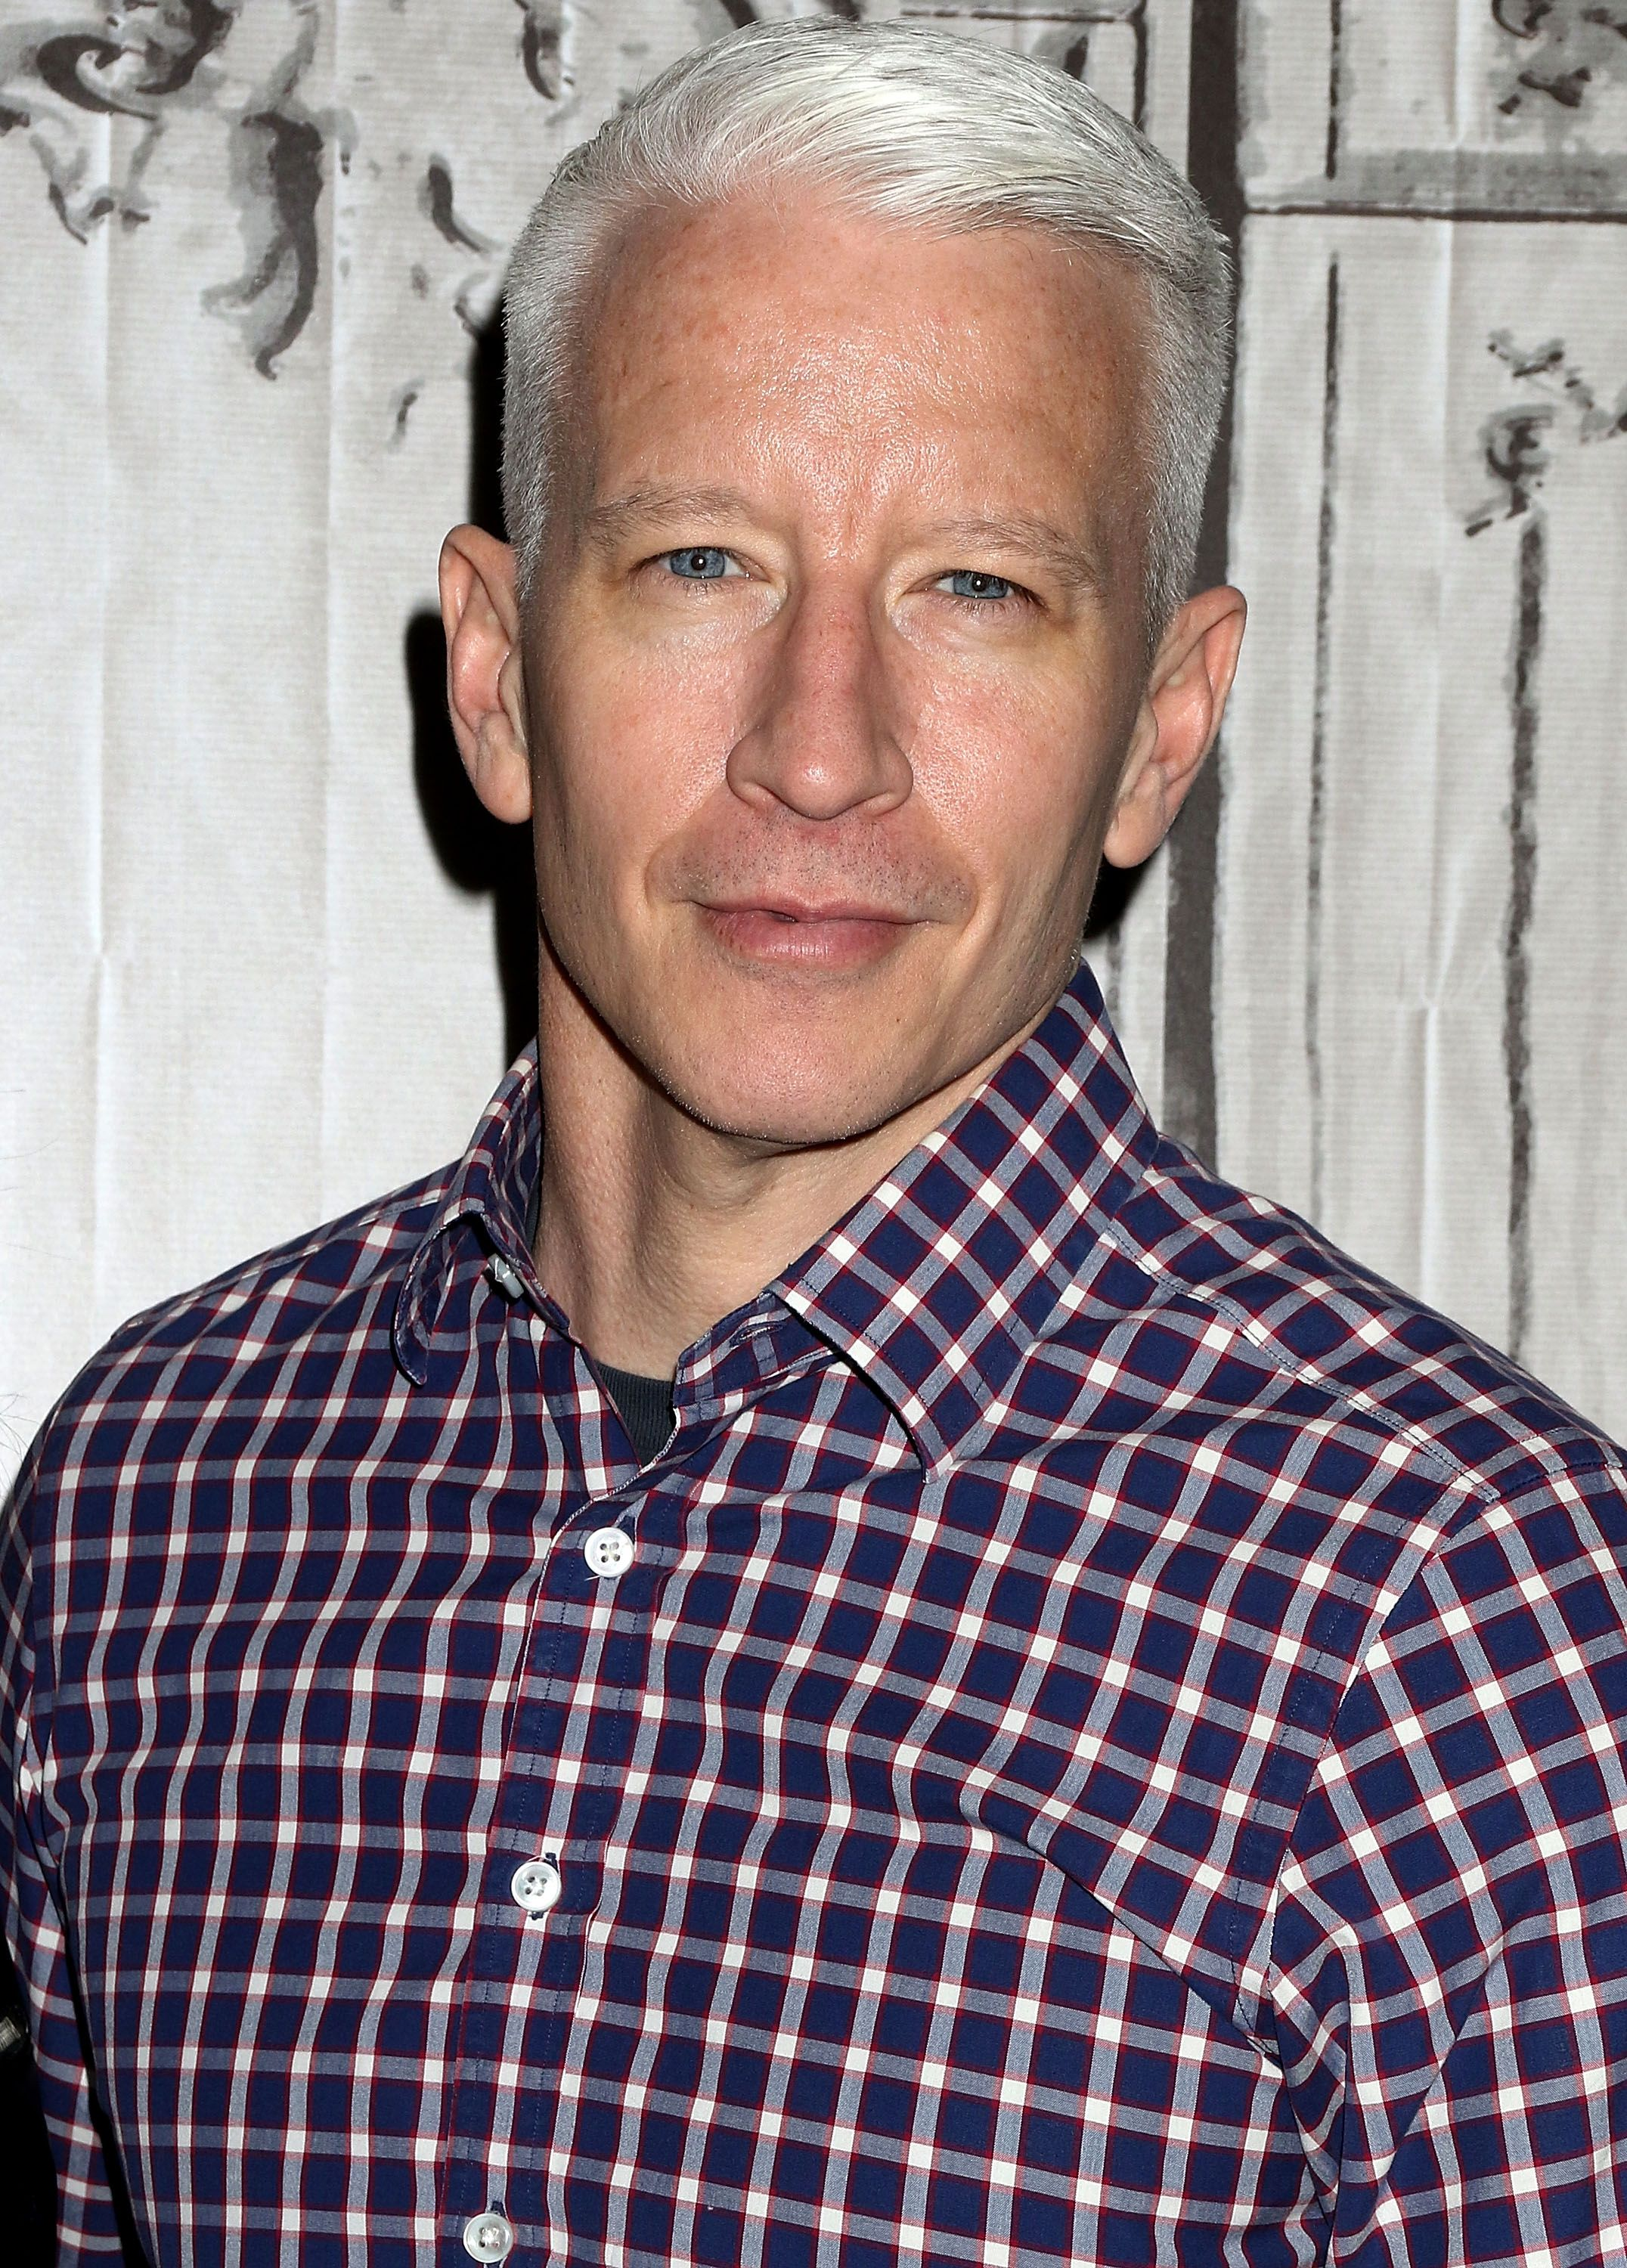 """Anderson Cooper at AOL Build Speaker Series to discuss """"Nothing Left Unsaid"""" at AOL Studios in New York on April 15, 2016 